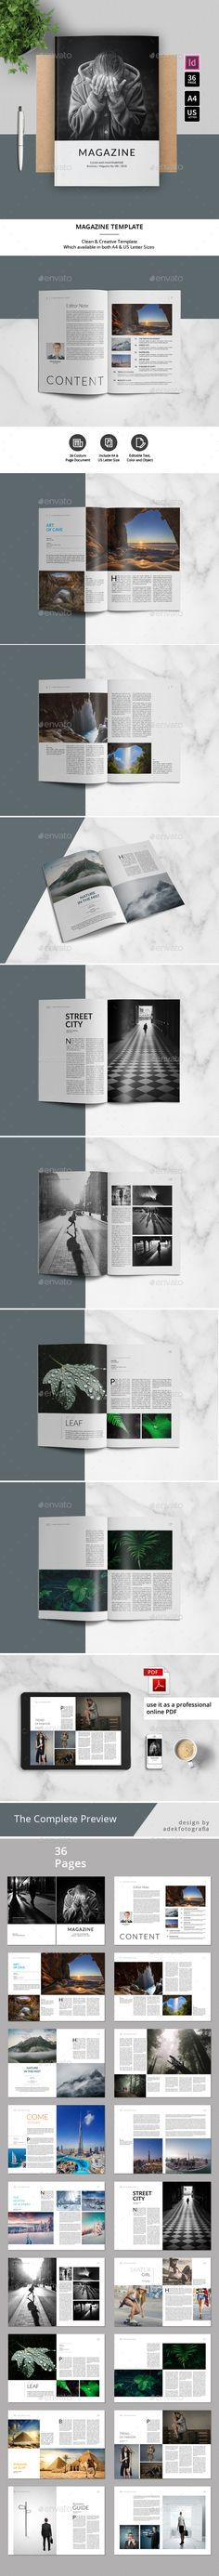 Magazine Template - Magazines Print Templates Download here : https://graphicriver.net/item/magazine-template/19453130?s_rank=31&ref=Al-fatih